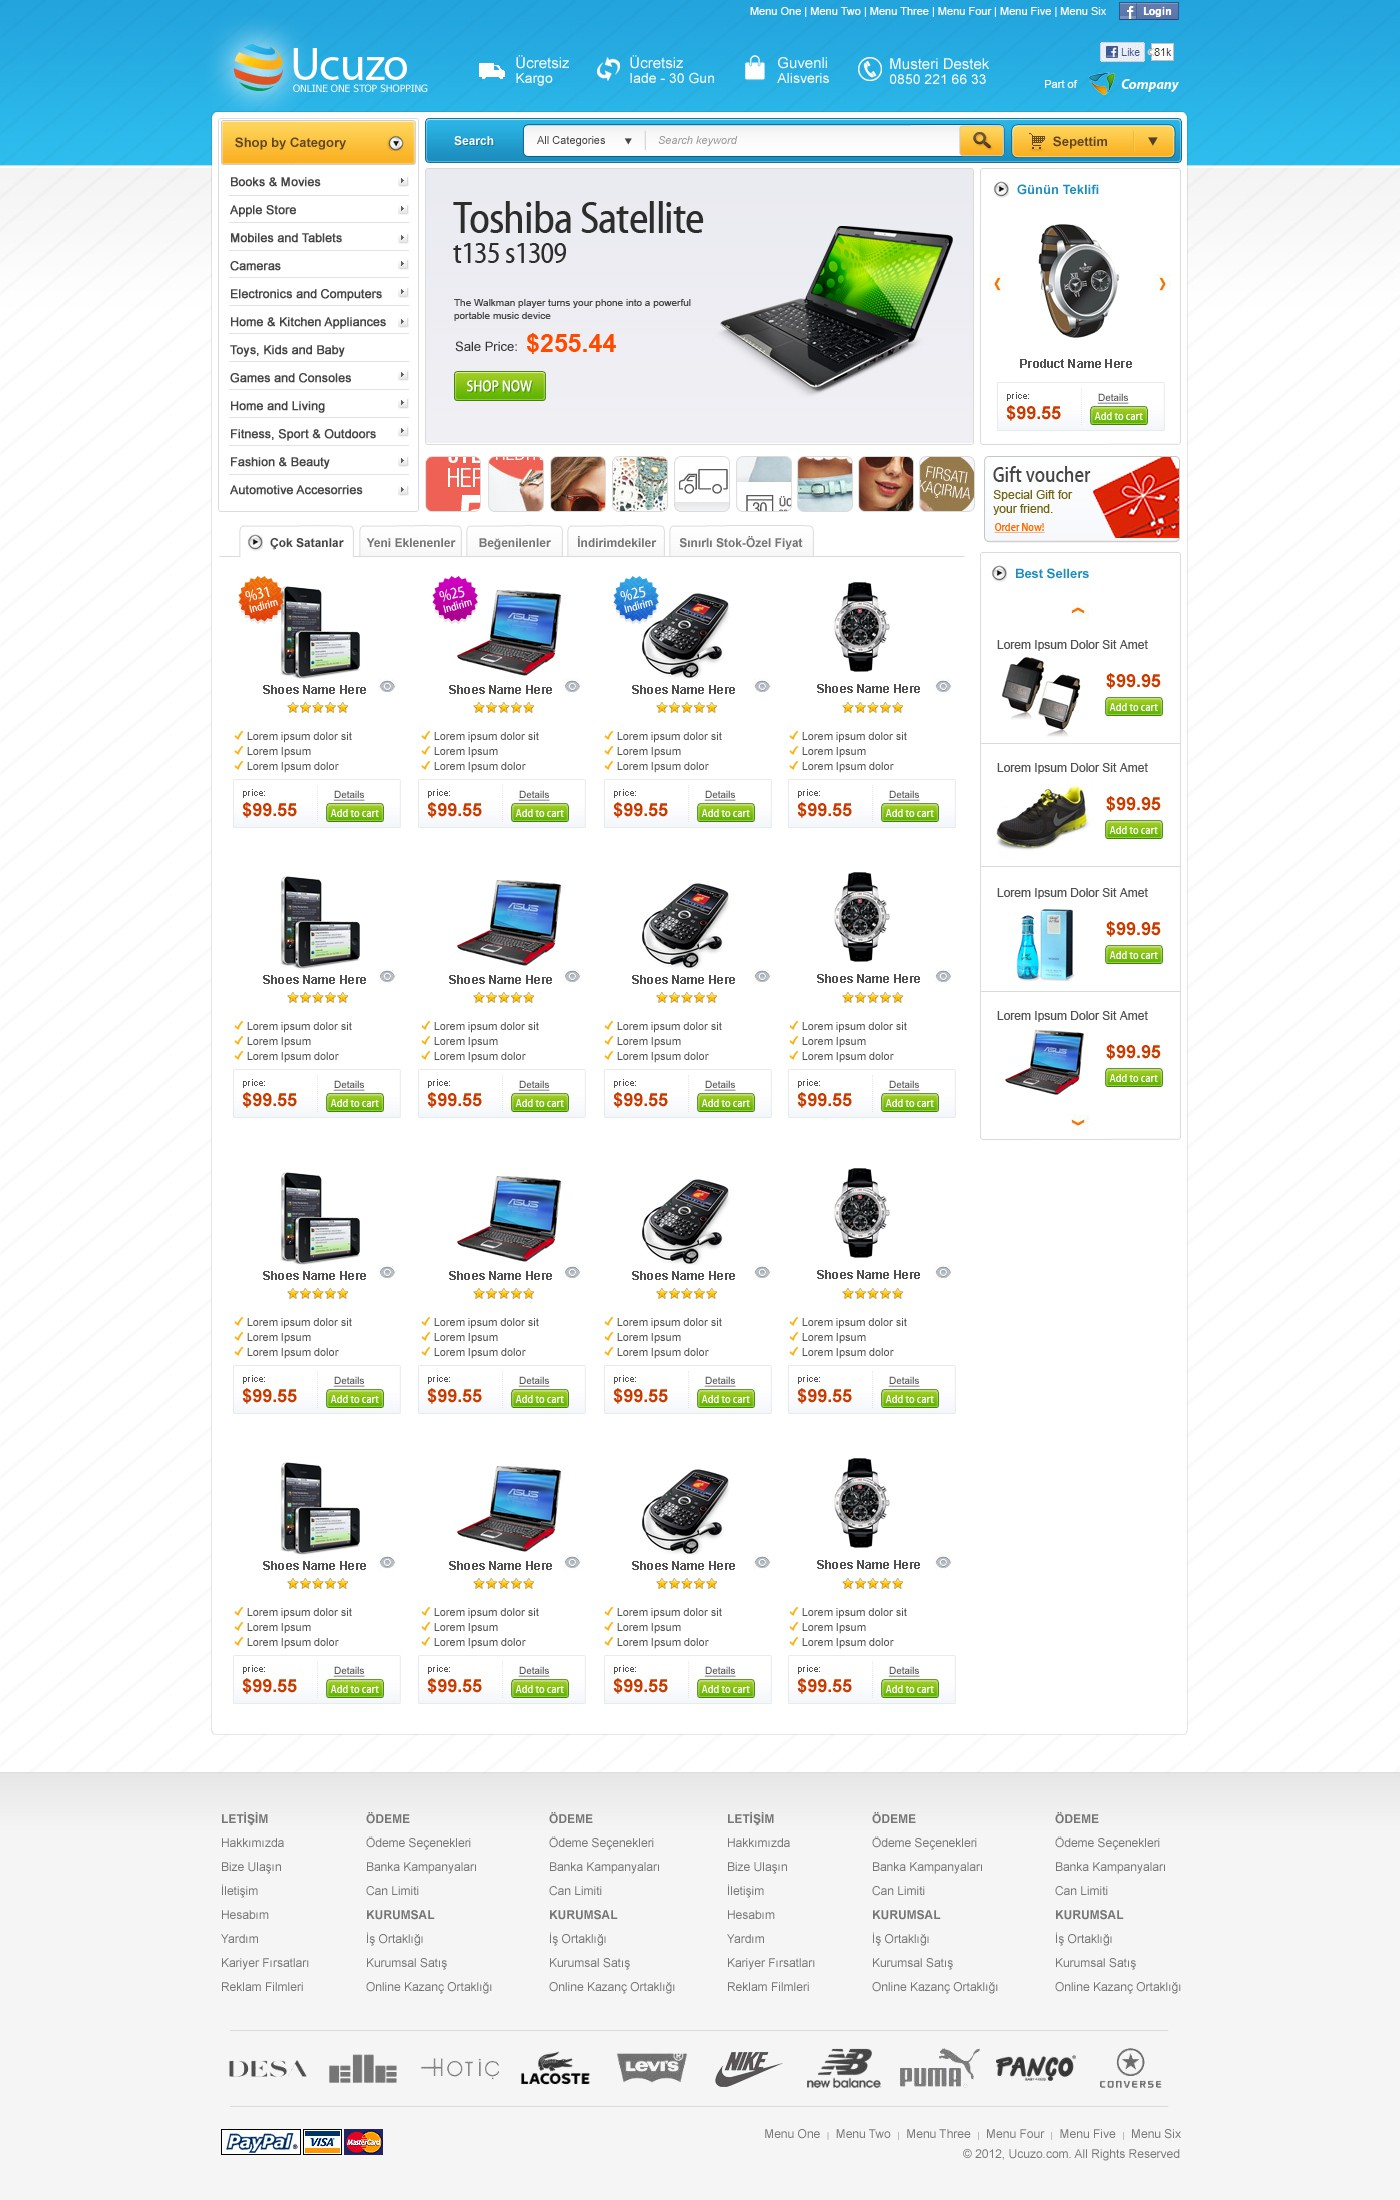 Create a new eCommerce design for ucuzo